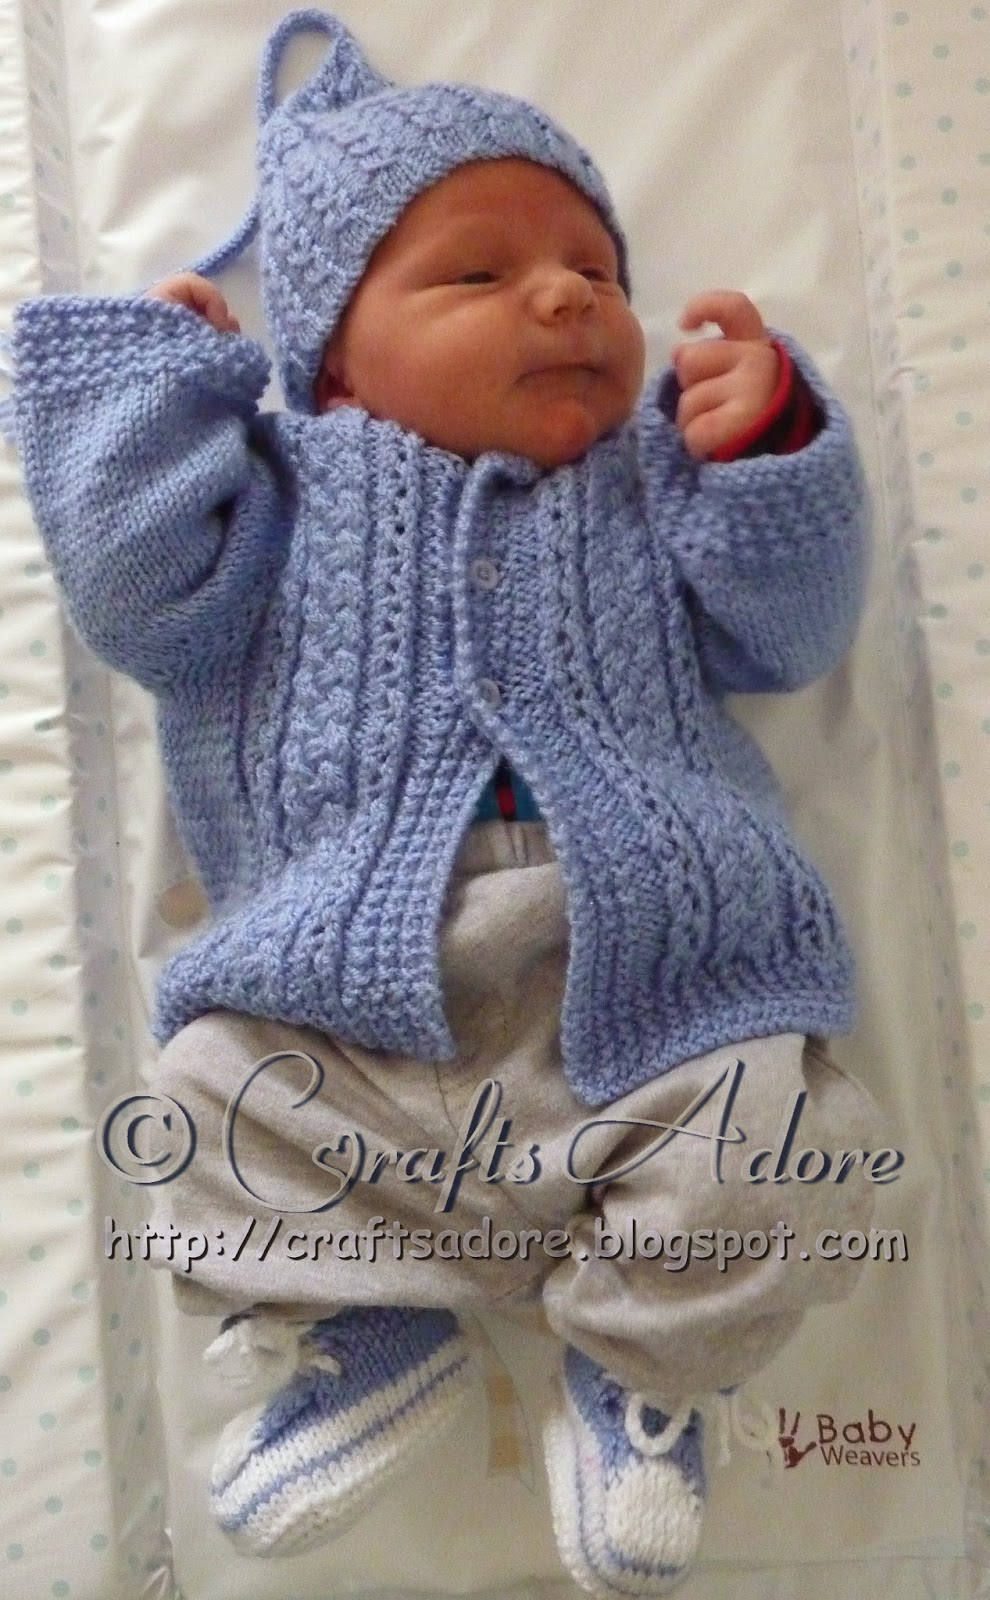 Free Babies Knitting Patterns For Cardigans : CraftsAdore: